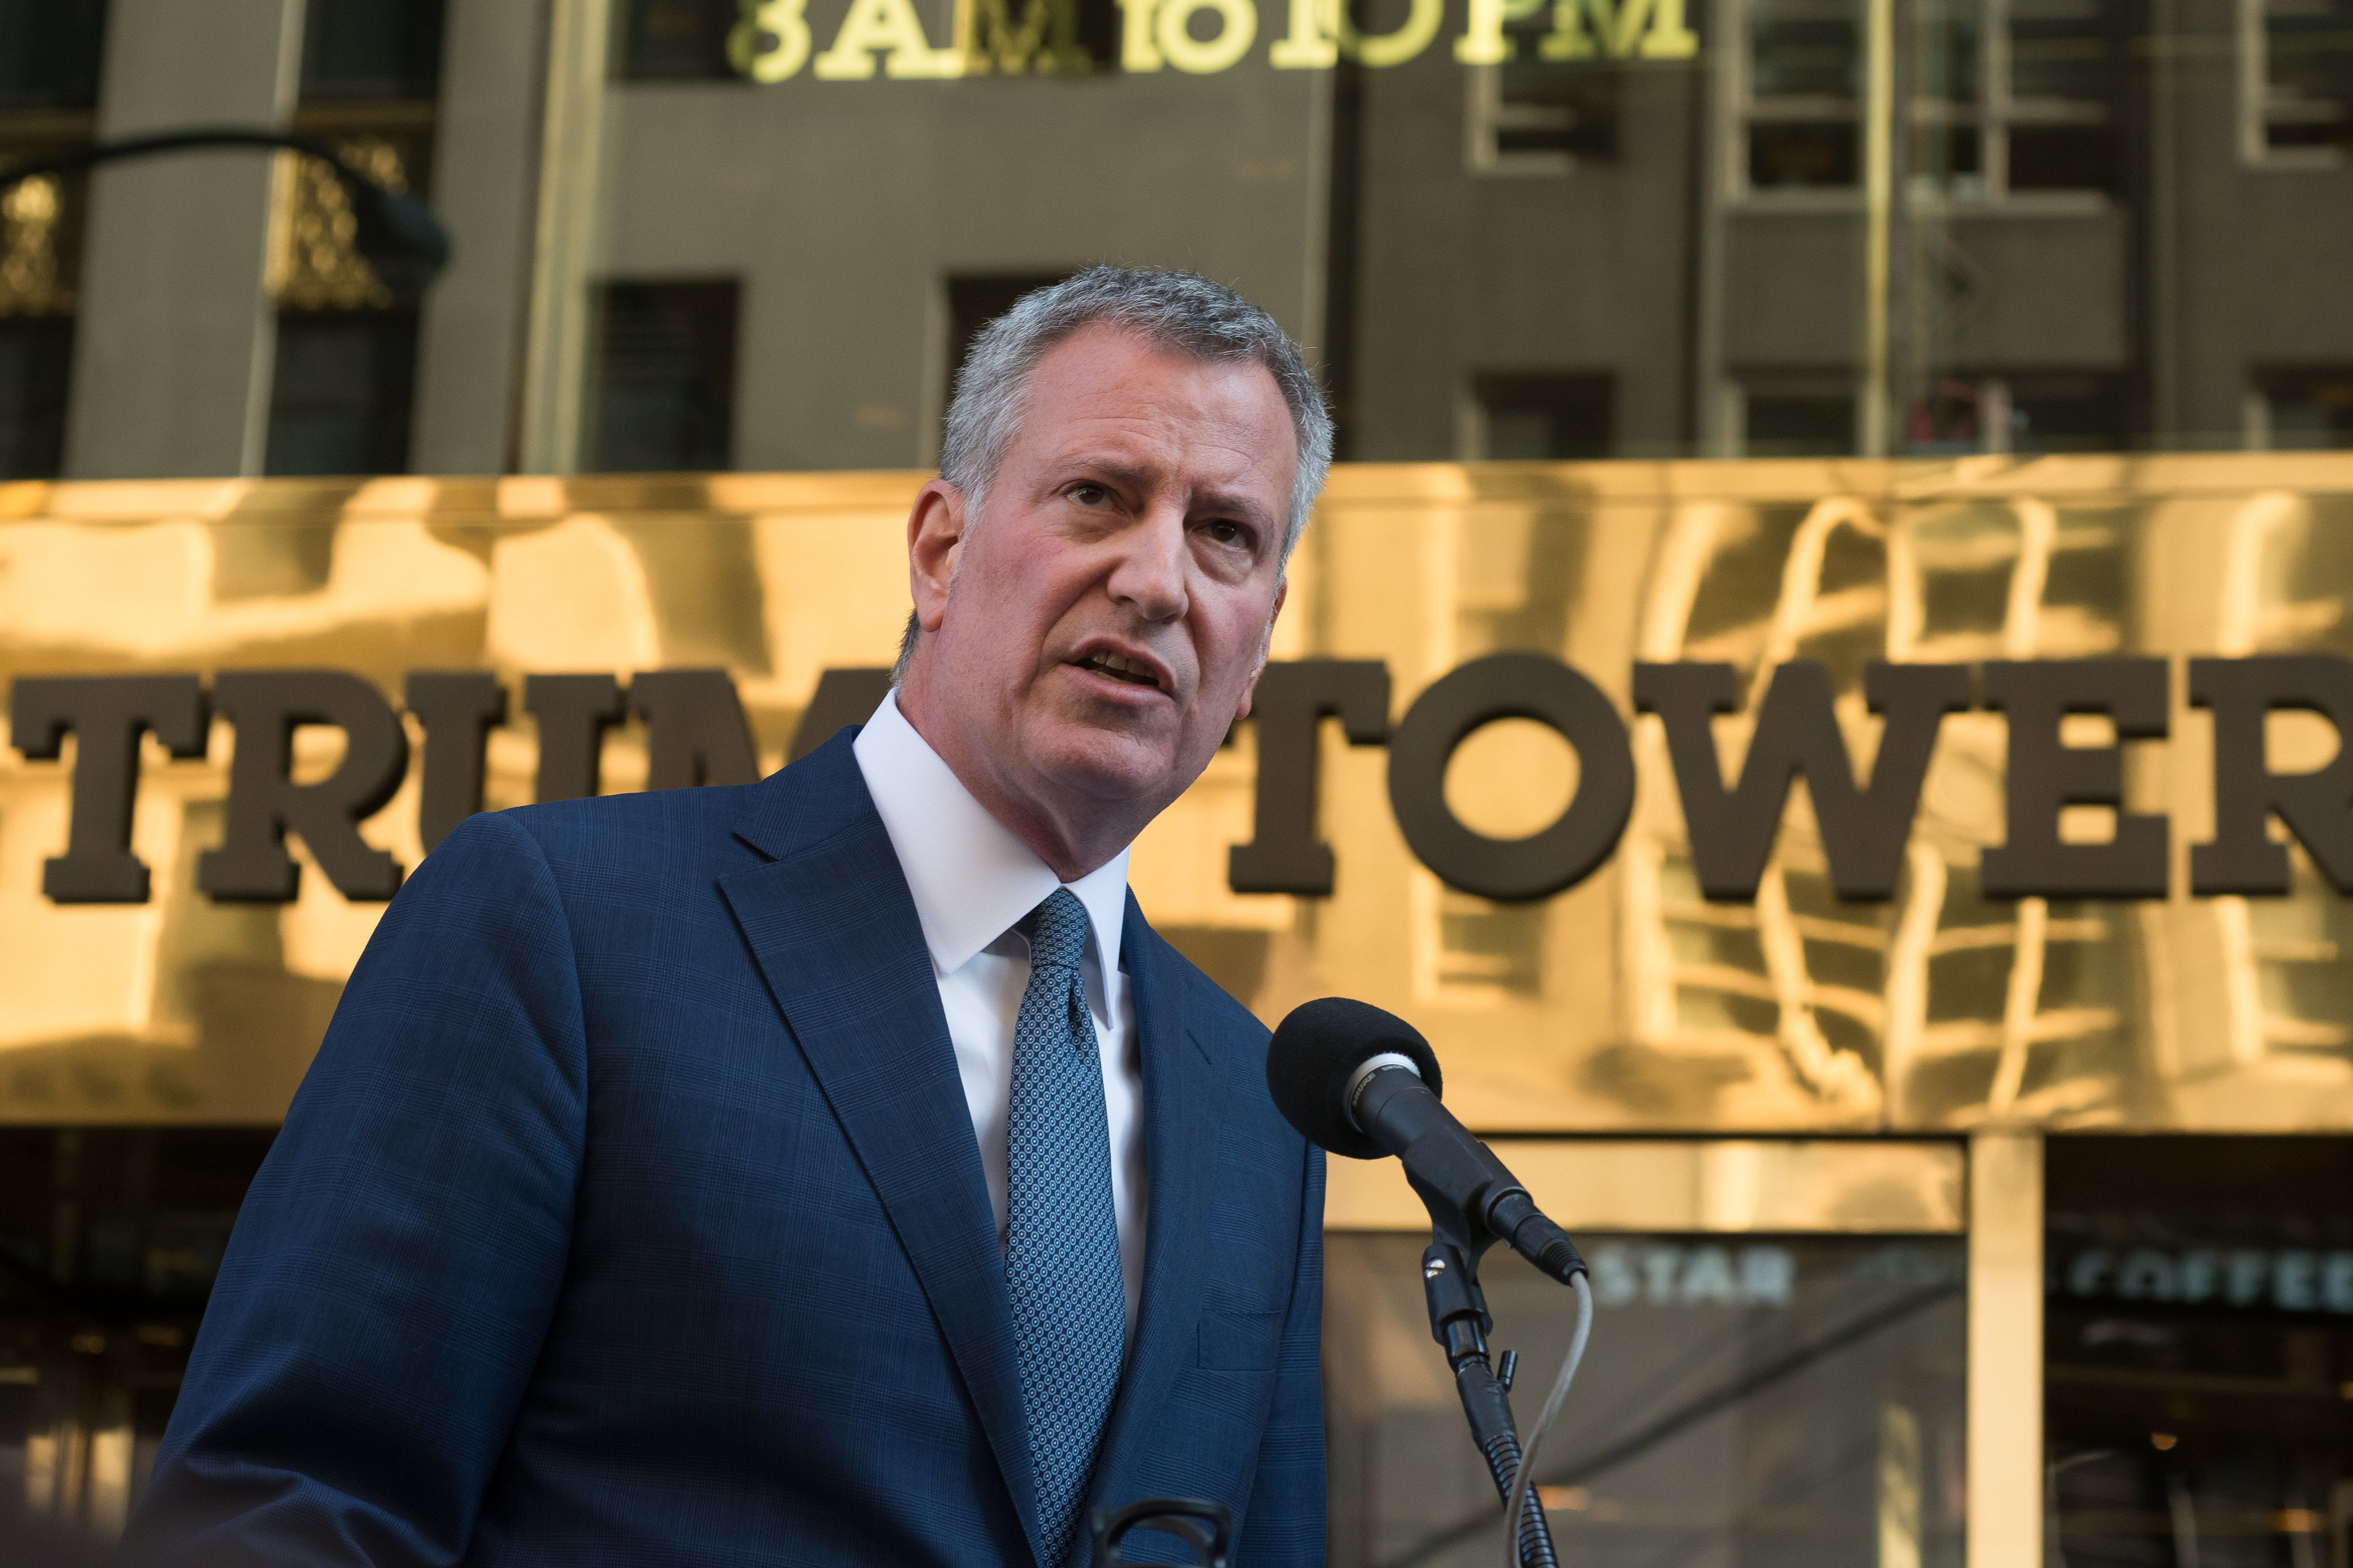 New York City Mayor Bill de Blasio (D) speaks at a press conference at Trump Tower in New York, Nov. 16, 2016. He&n